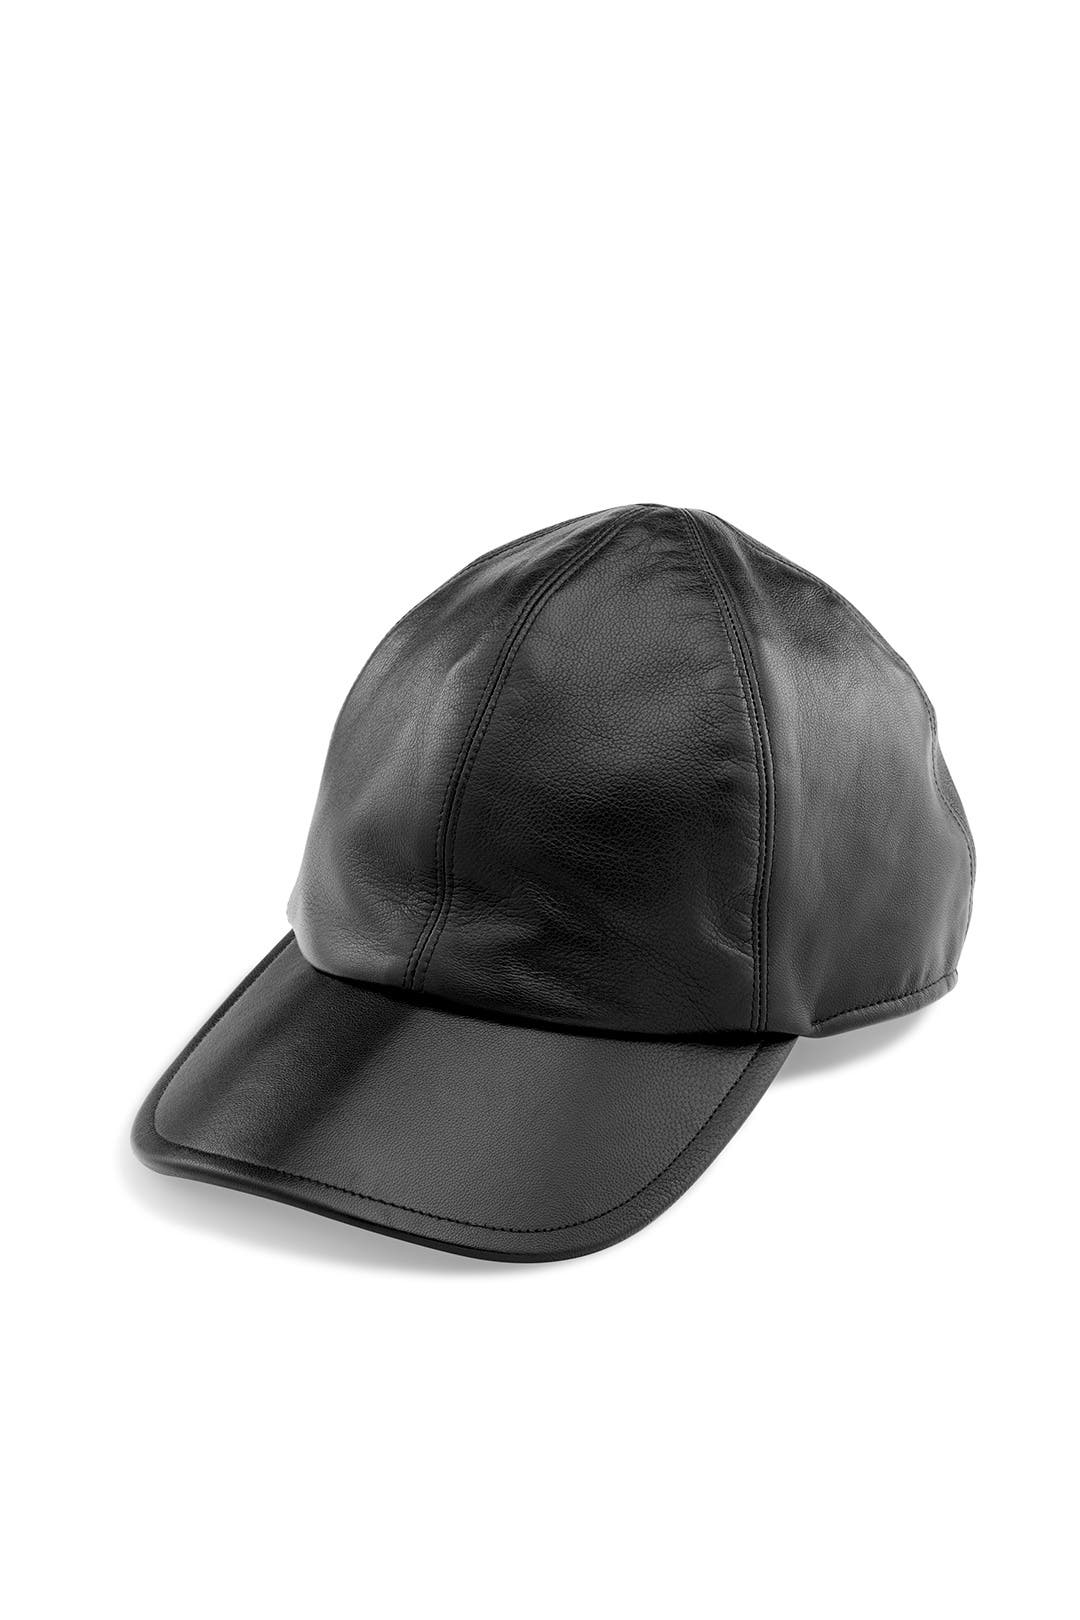 Black Ballgame Cap by Yestadt